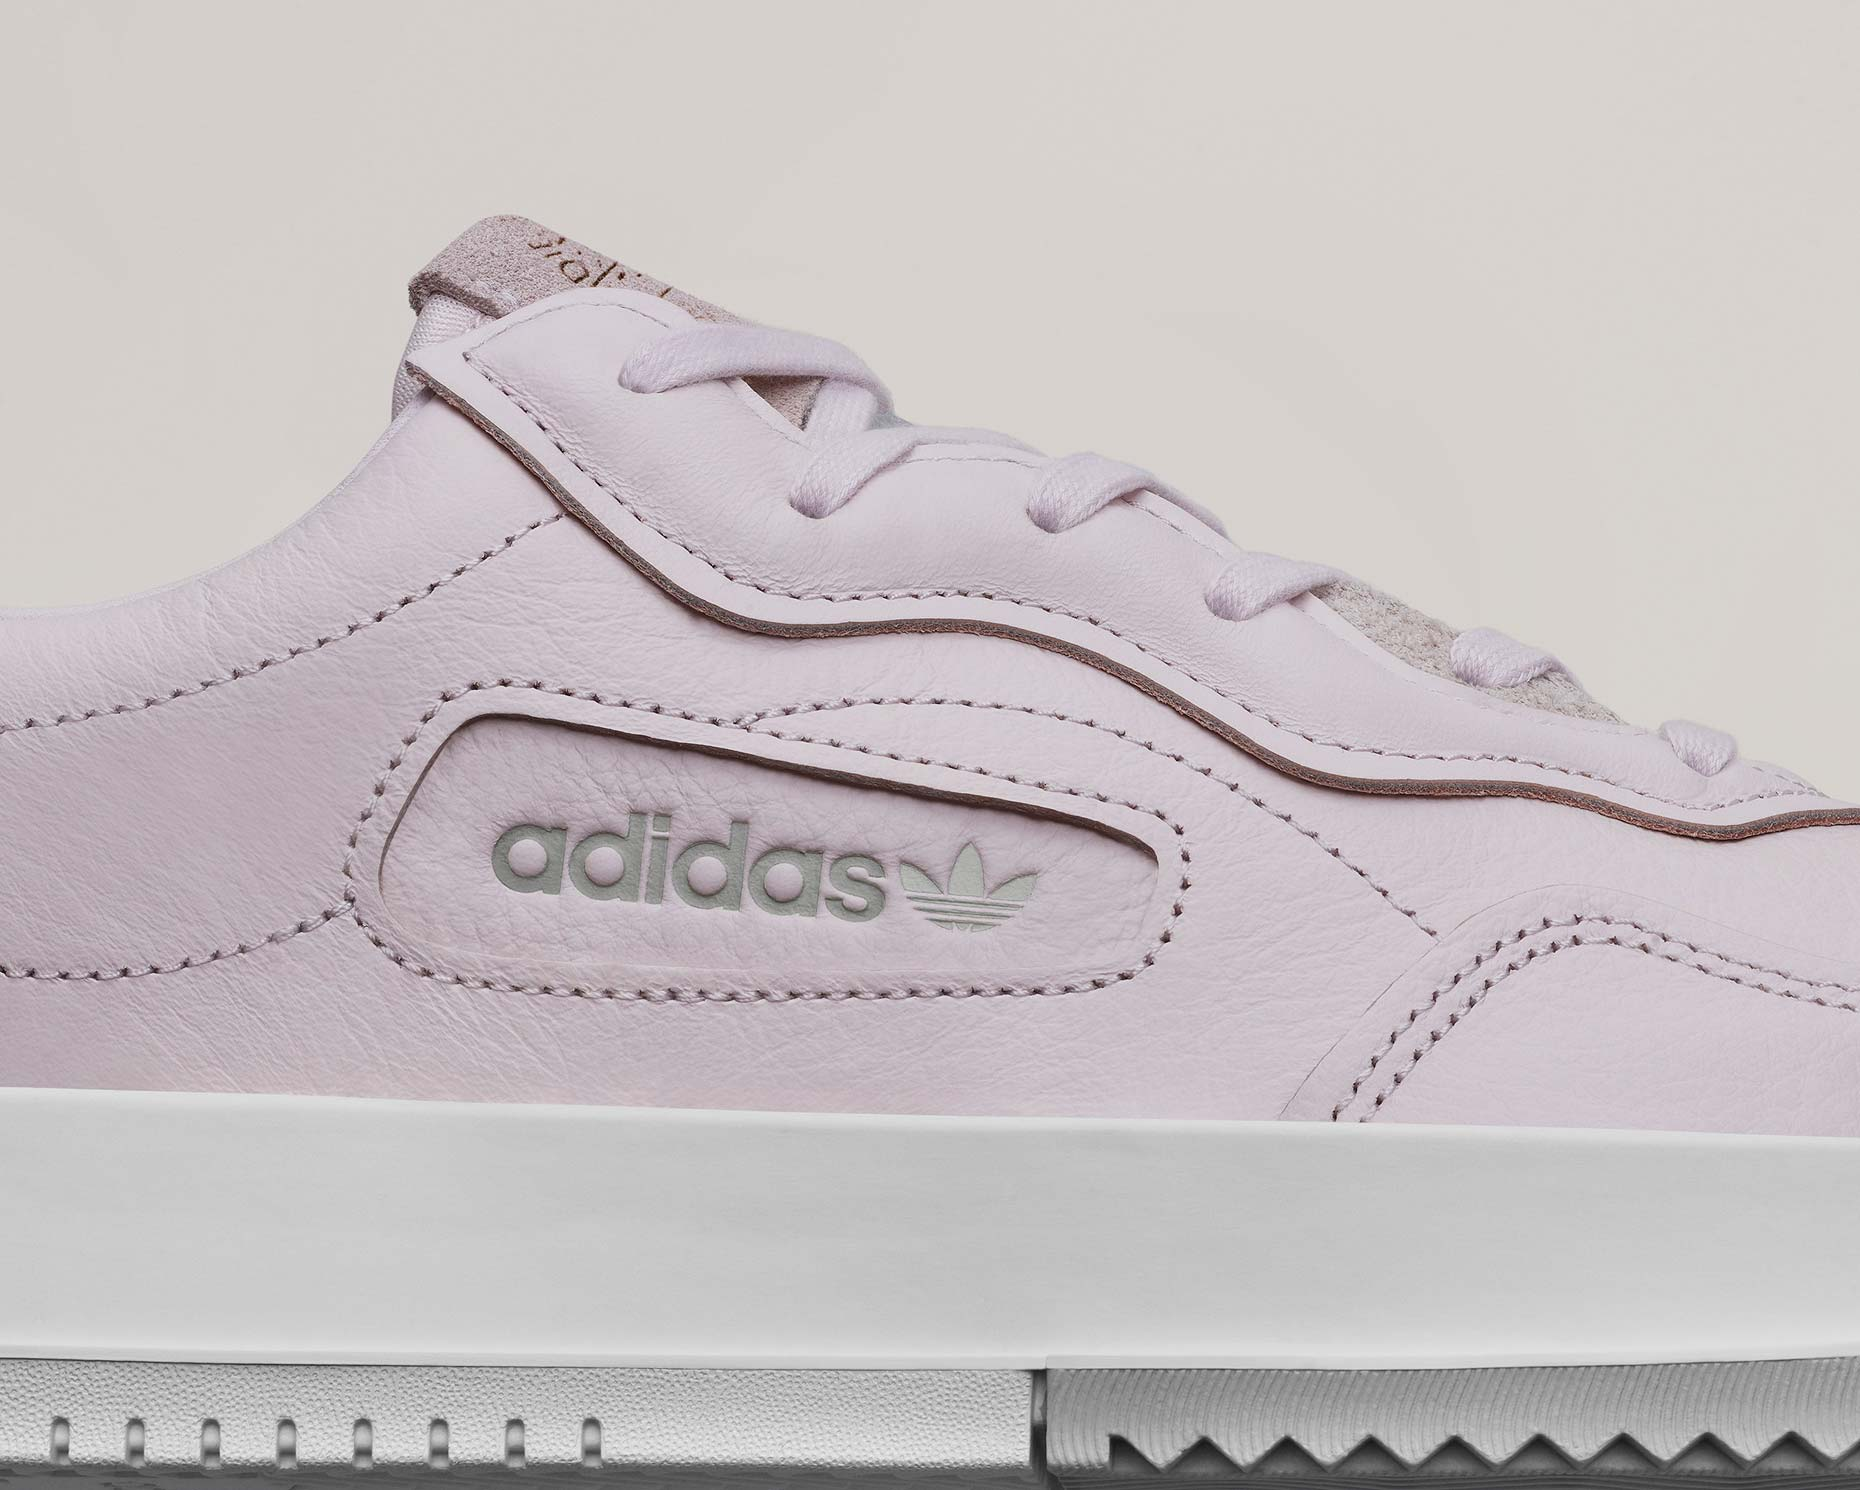 adidasOriginals_SS19_SuperCourt_SCPremiere_BD7598_01_Detail_COMP_c